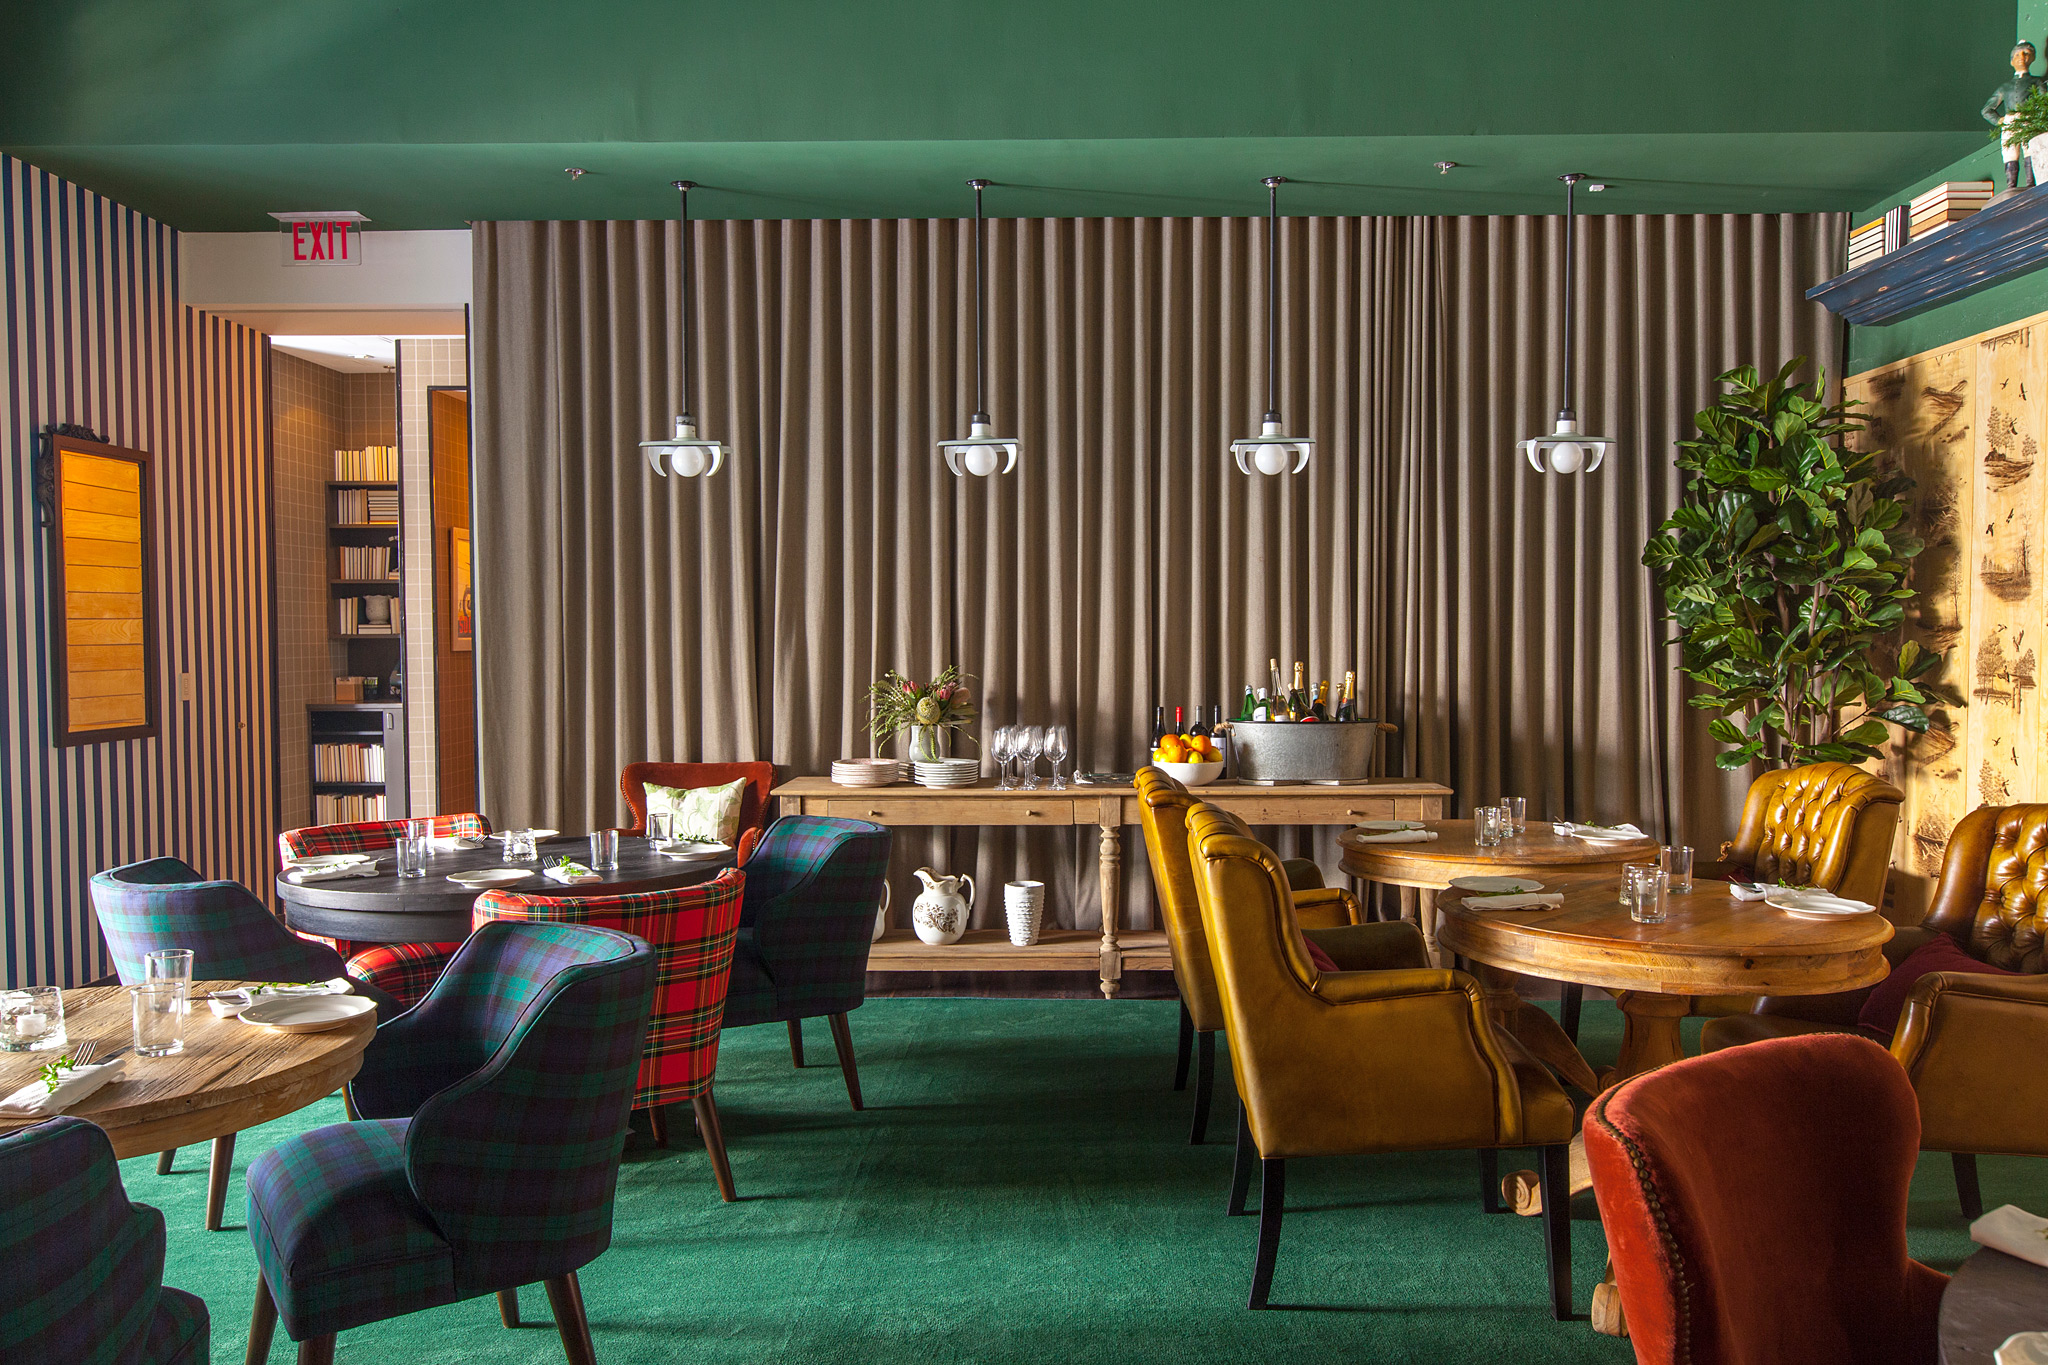 interior shot of private dining room, curtained walls, green carpet, oversized chairs in red plaid, green plaid, yellowed leather, wood tables